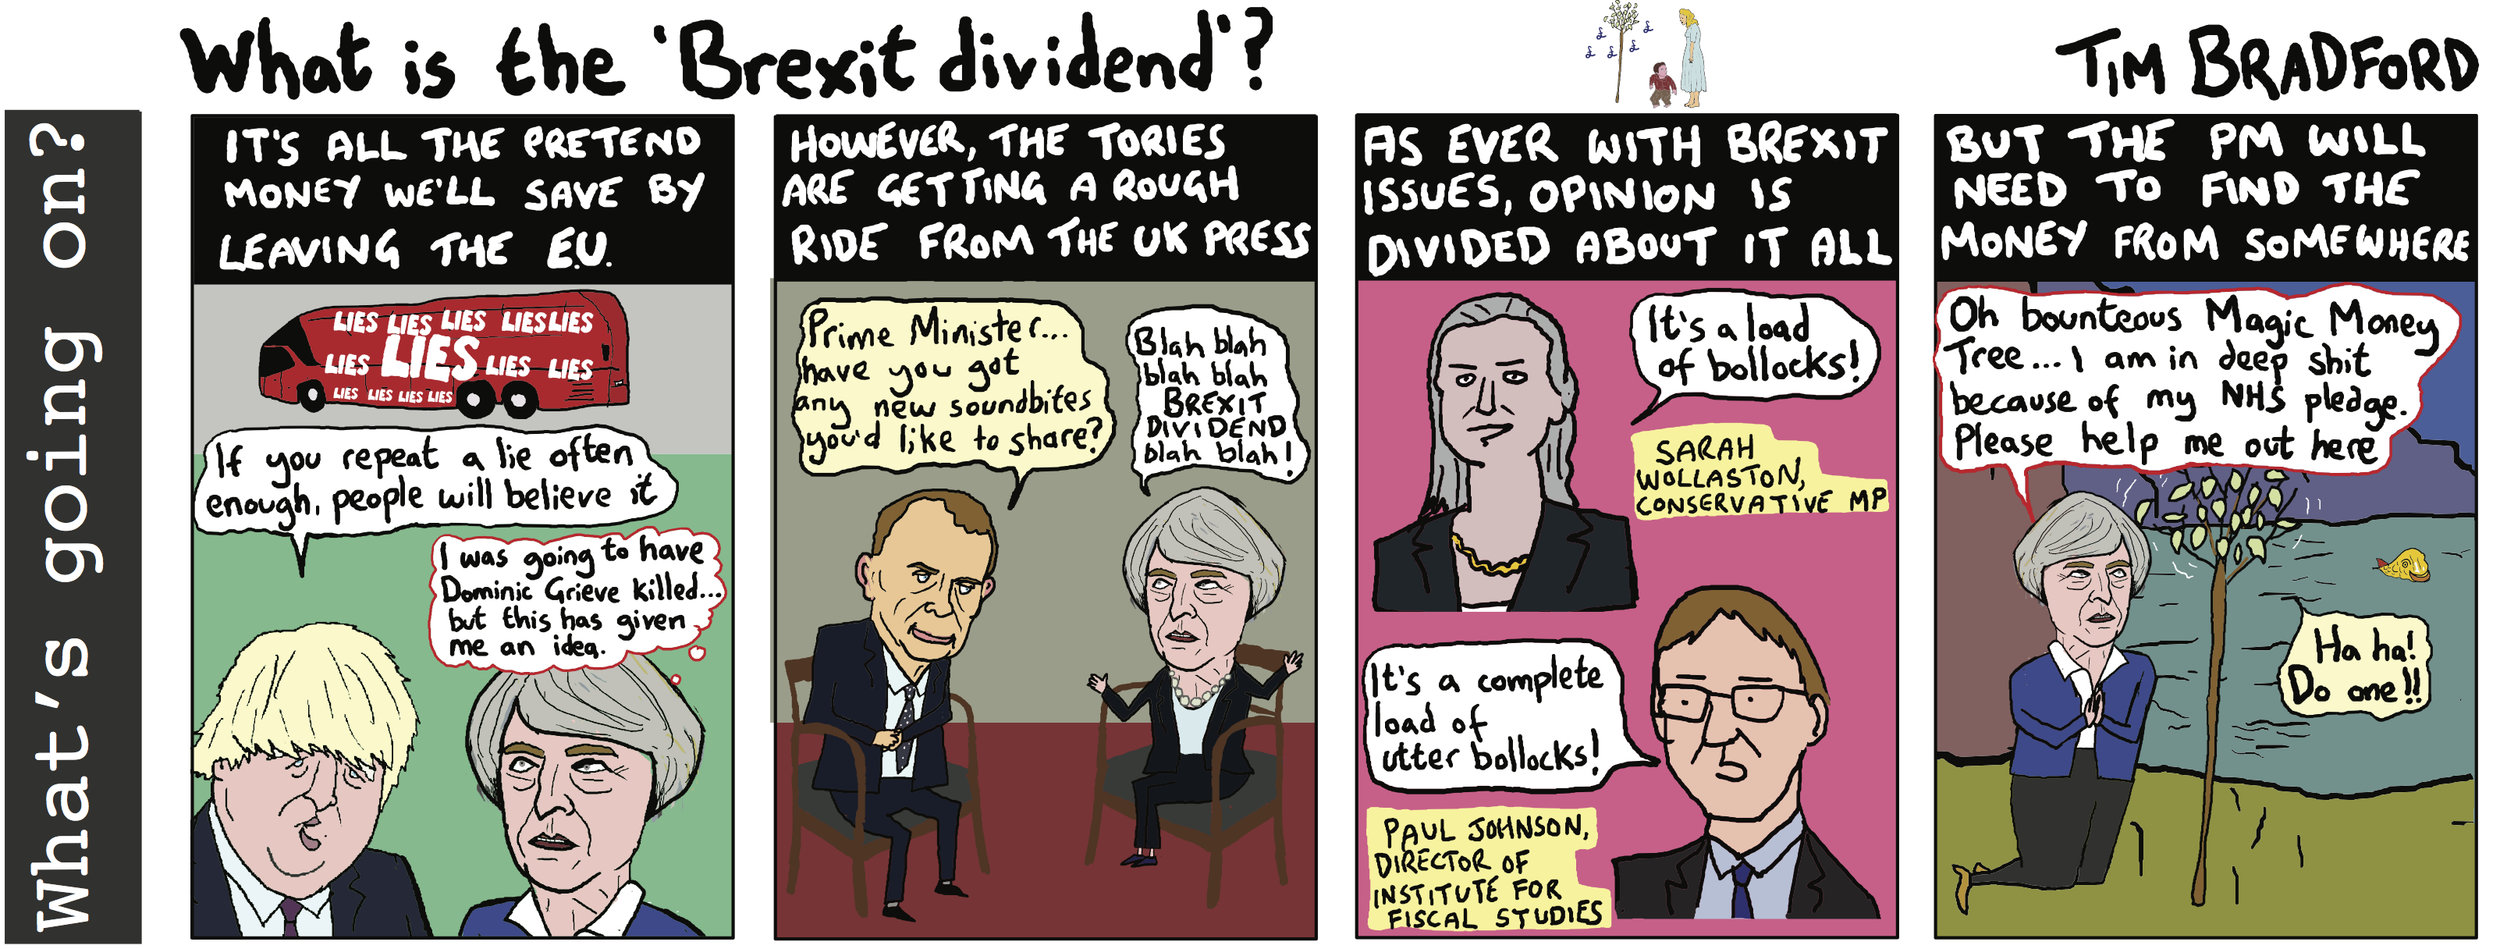 What is the 'Brexit dividend'? - 19/06/18